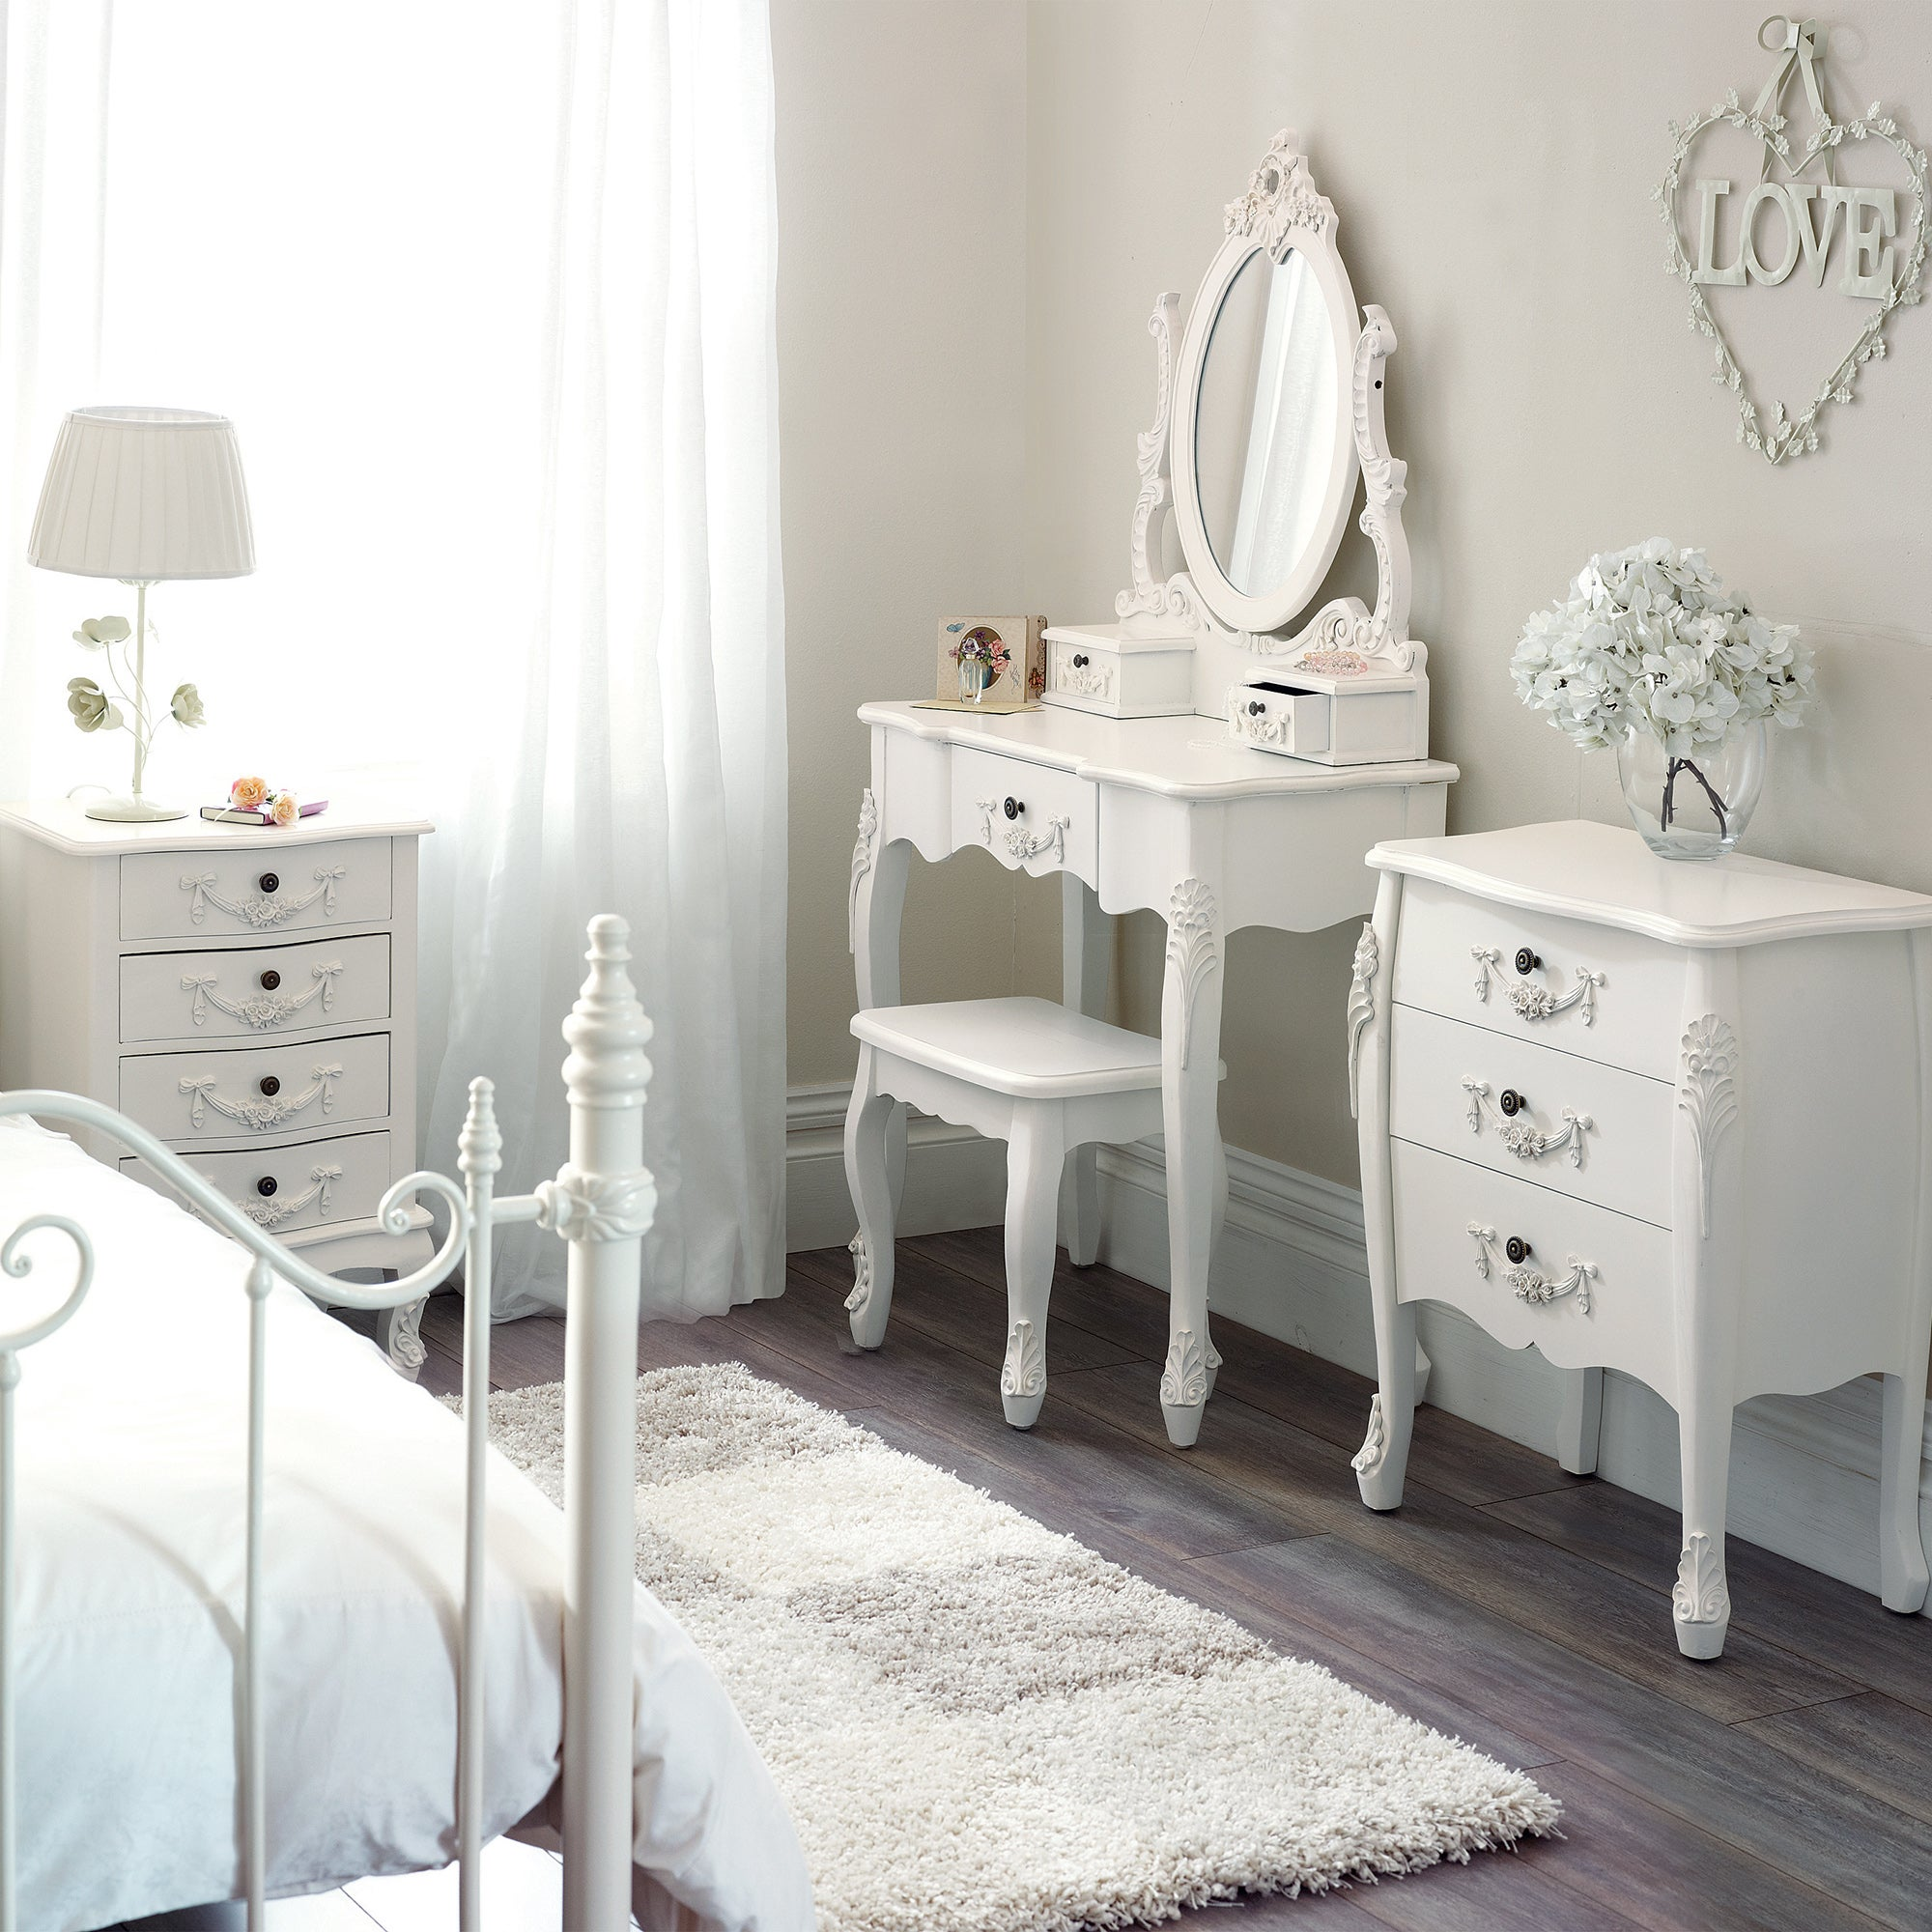 The Hub Dunelm Mill - New in Sale: 8% off Toulouse Bedroom